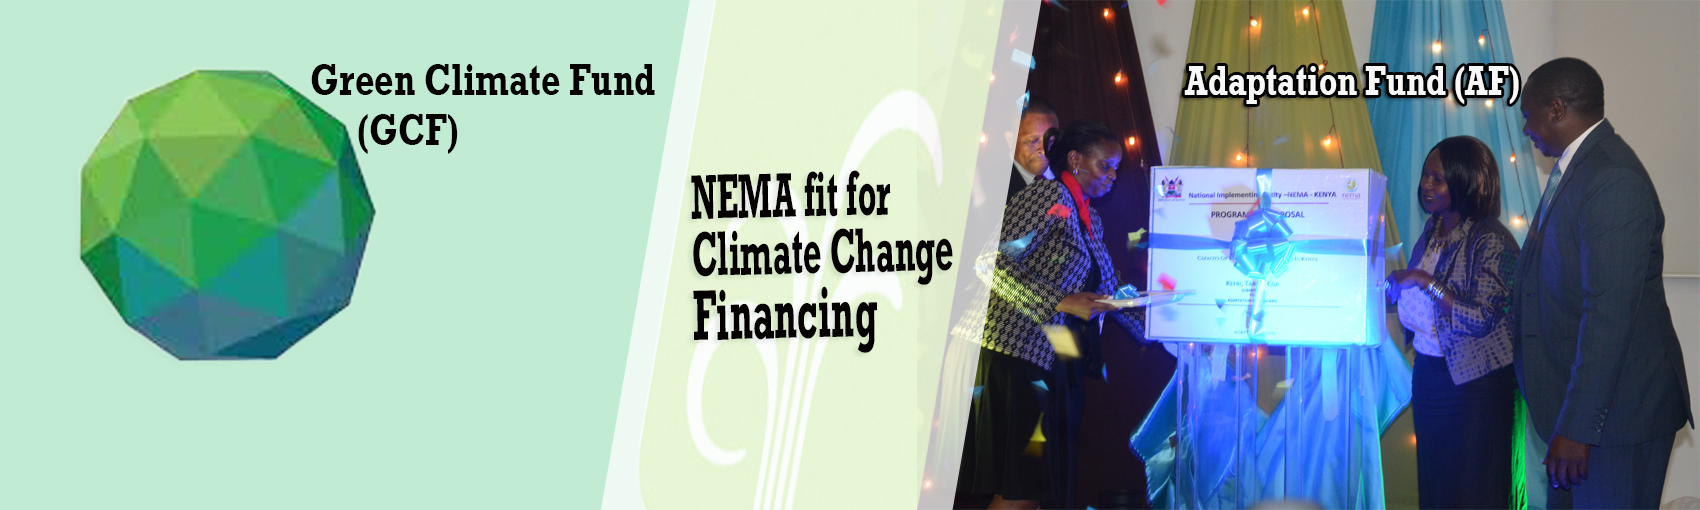 NEMA fit for Climate Change Financing